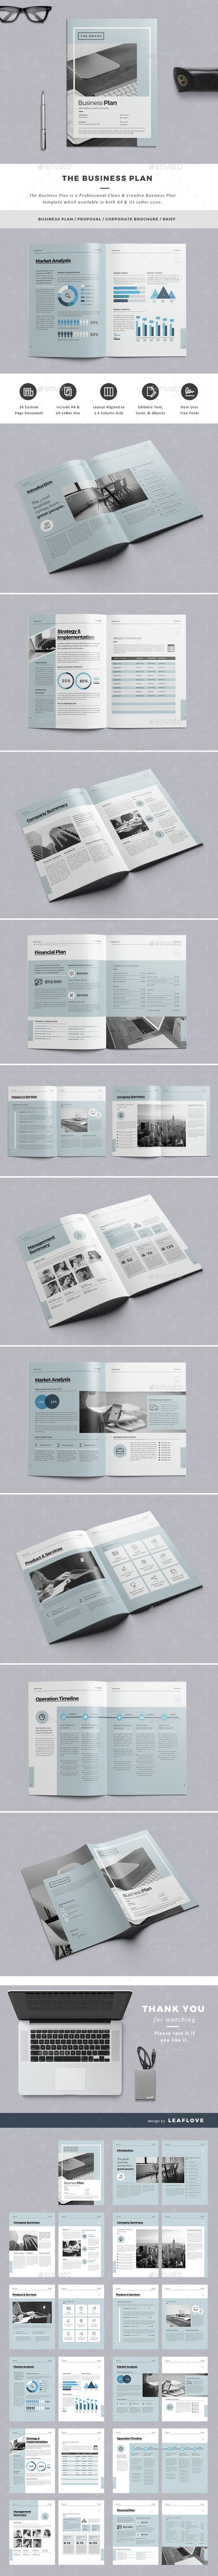 The Business Plan Template InDesign INDD Download Here Http - Indesign business plan template